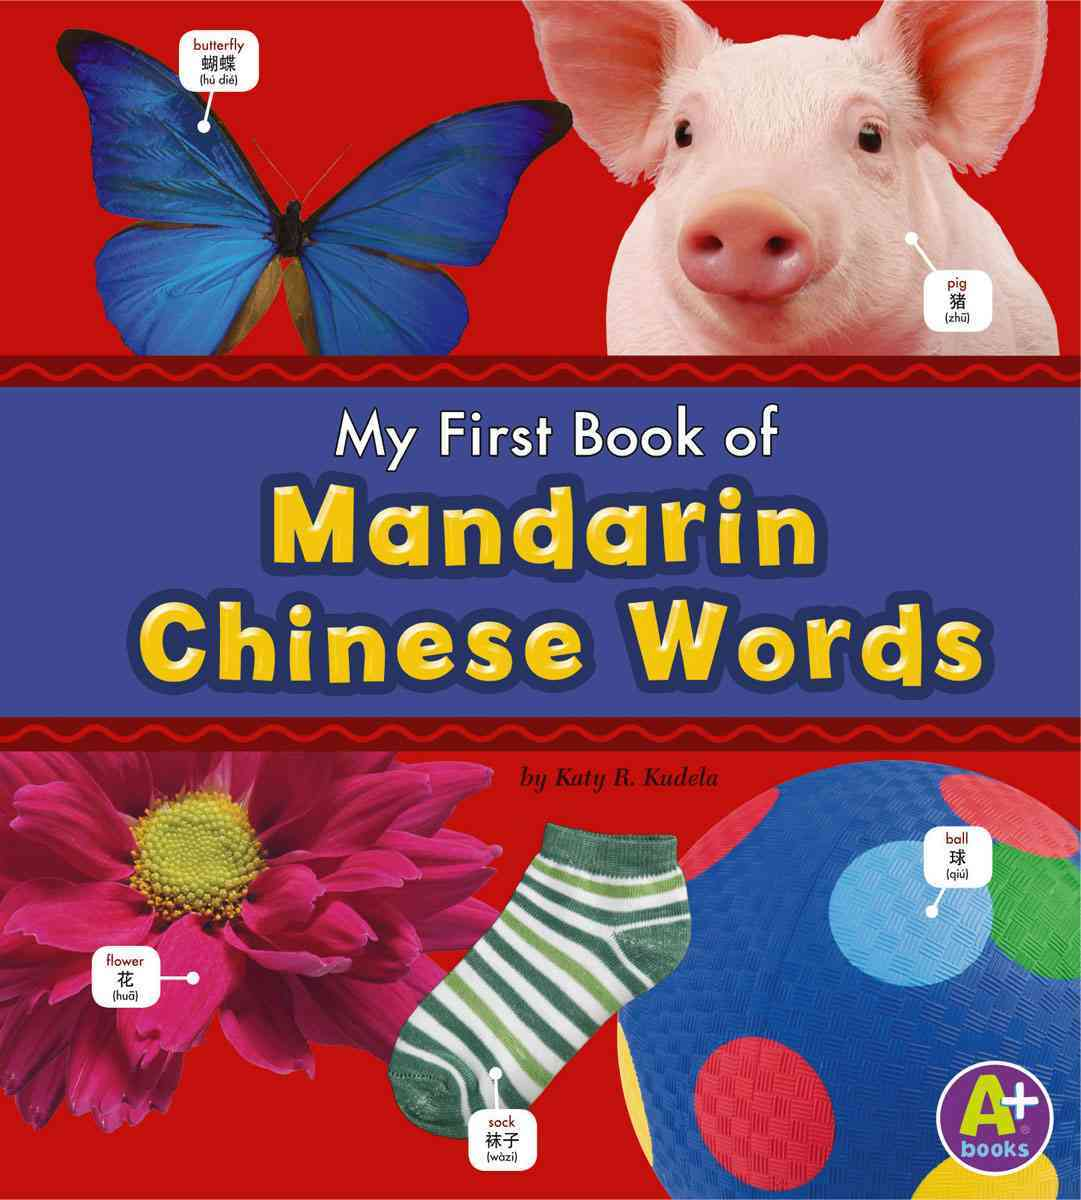 My First Book of Mandarin Chinese Words (Hardcover)